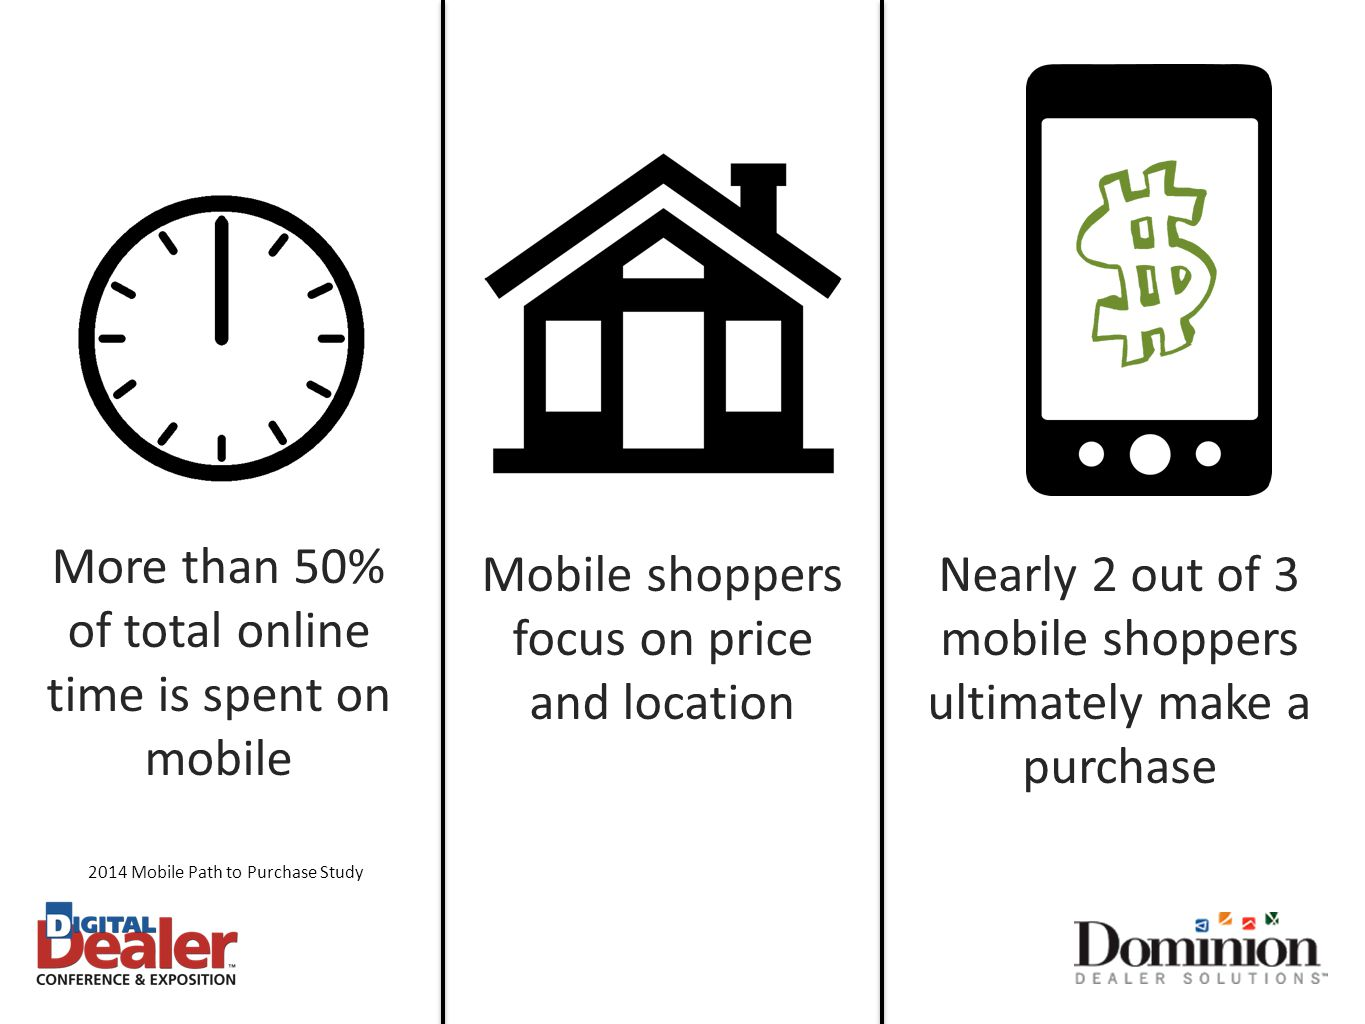 More than 50% of total online time is spent on mobile Nearly 2 out of 3 mobile shoppers ultimately make a purchase Mobile shoppers focus on price and location 2014 Mobile Path to Purchase Study